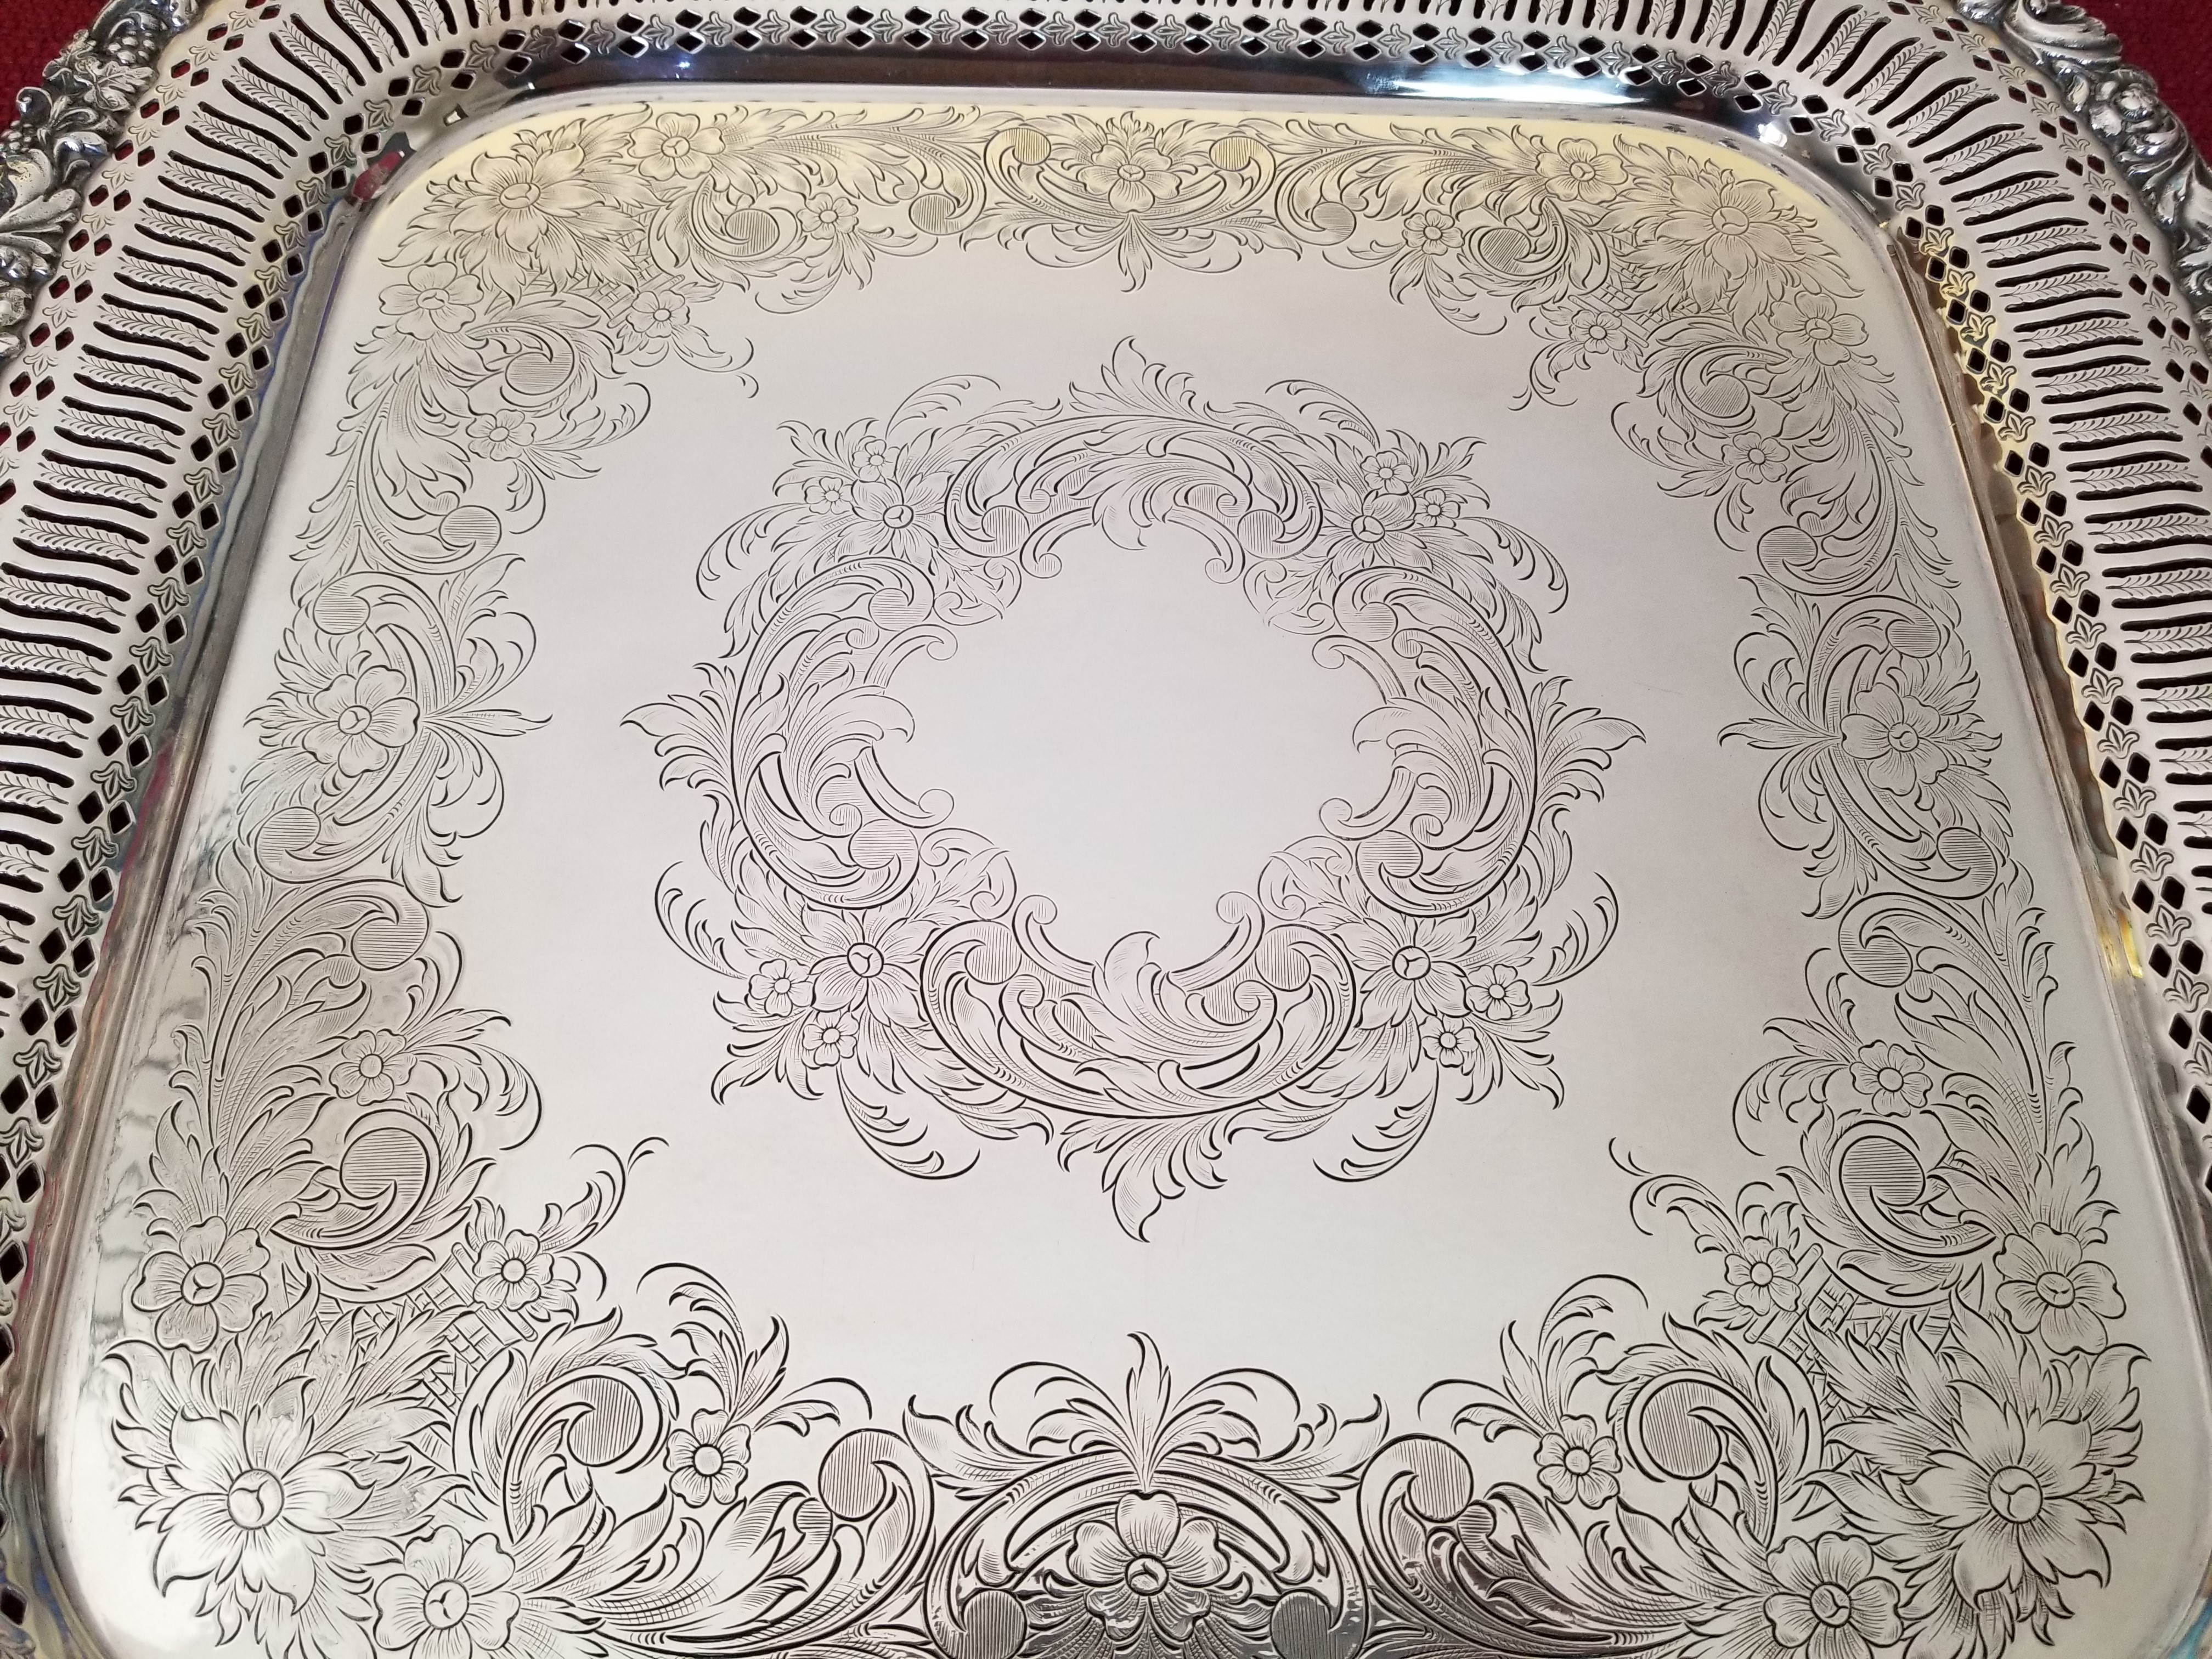 Silver plate close up (2).jpg